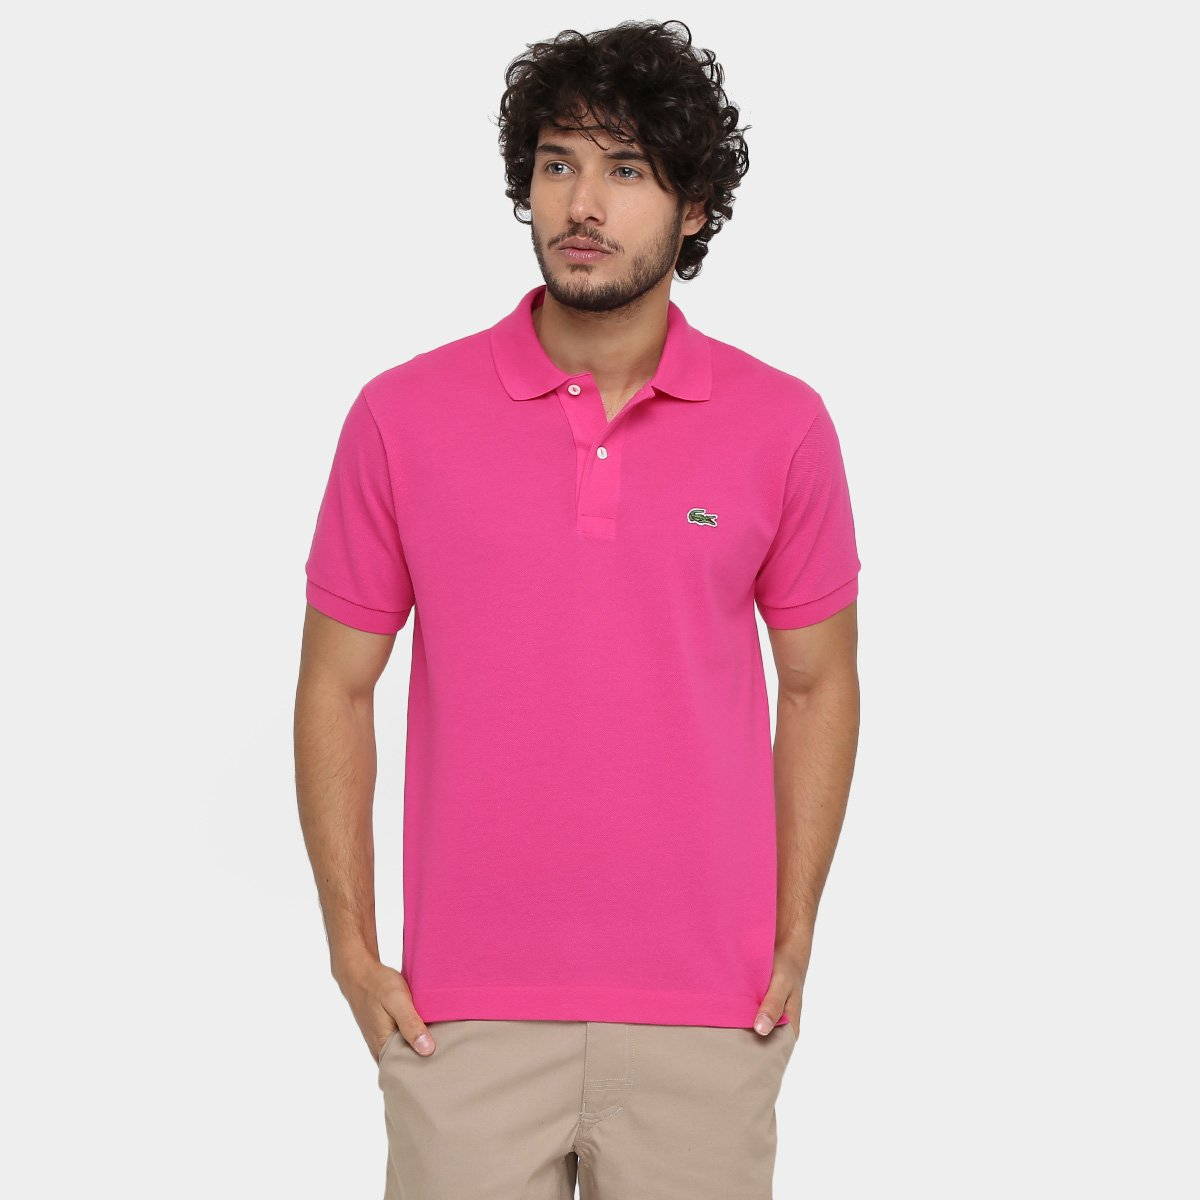 00205b30feebd Camisa Polo Lacoste Original Fit Masculina - Pink - Compre Agora ...